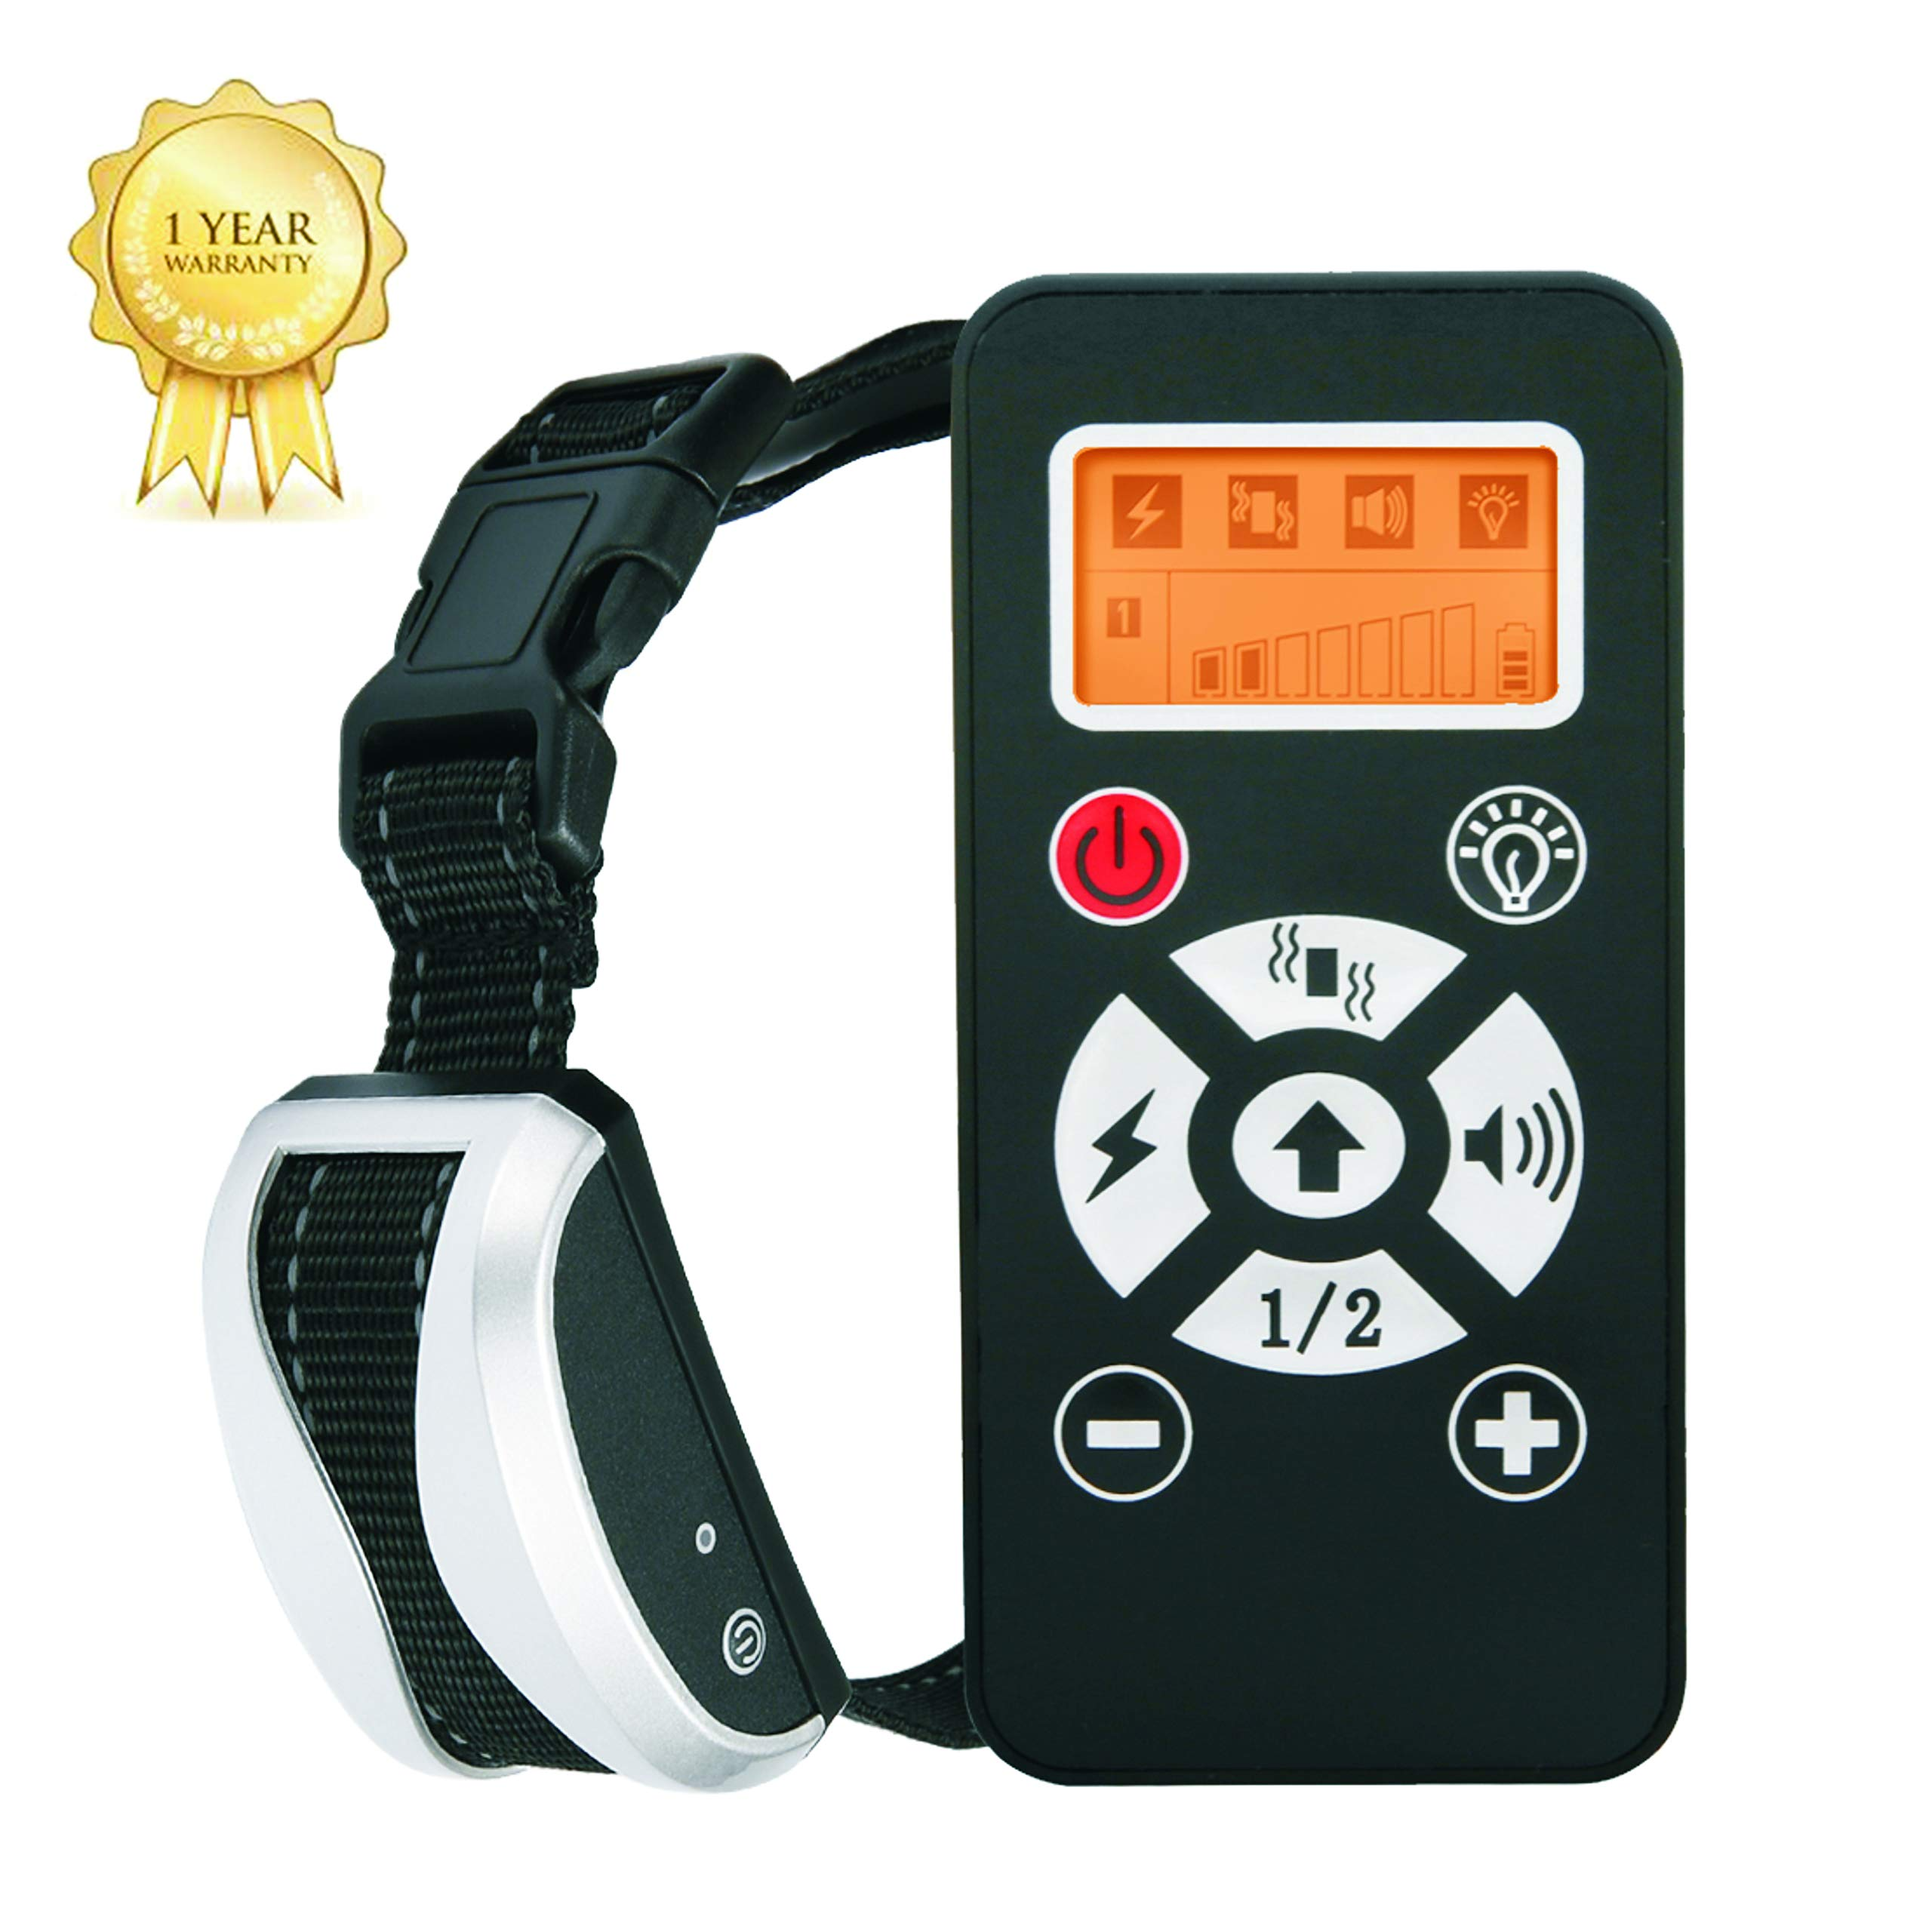 Dog Training Collar With Remote,Bark Collar Rechargeable and Waterproof Dog Shock Collar With Remote Adjustable Vibration and Shock,Electric Dog Collar for Small, Medium and Large Dogs 1 Year Warranty